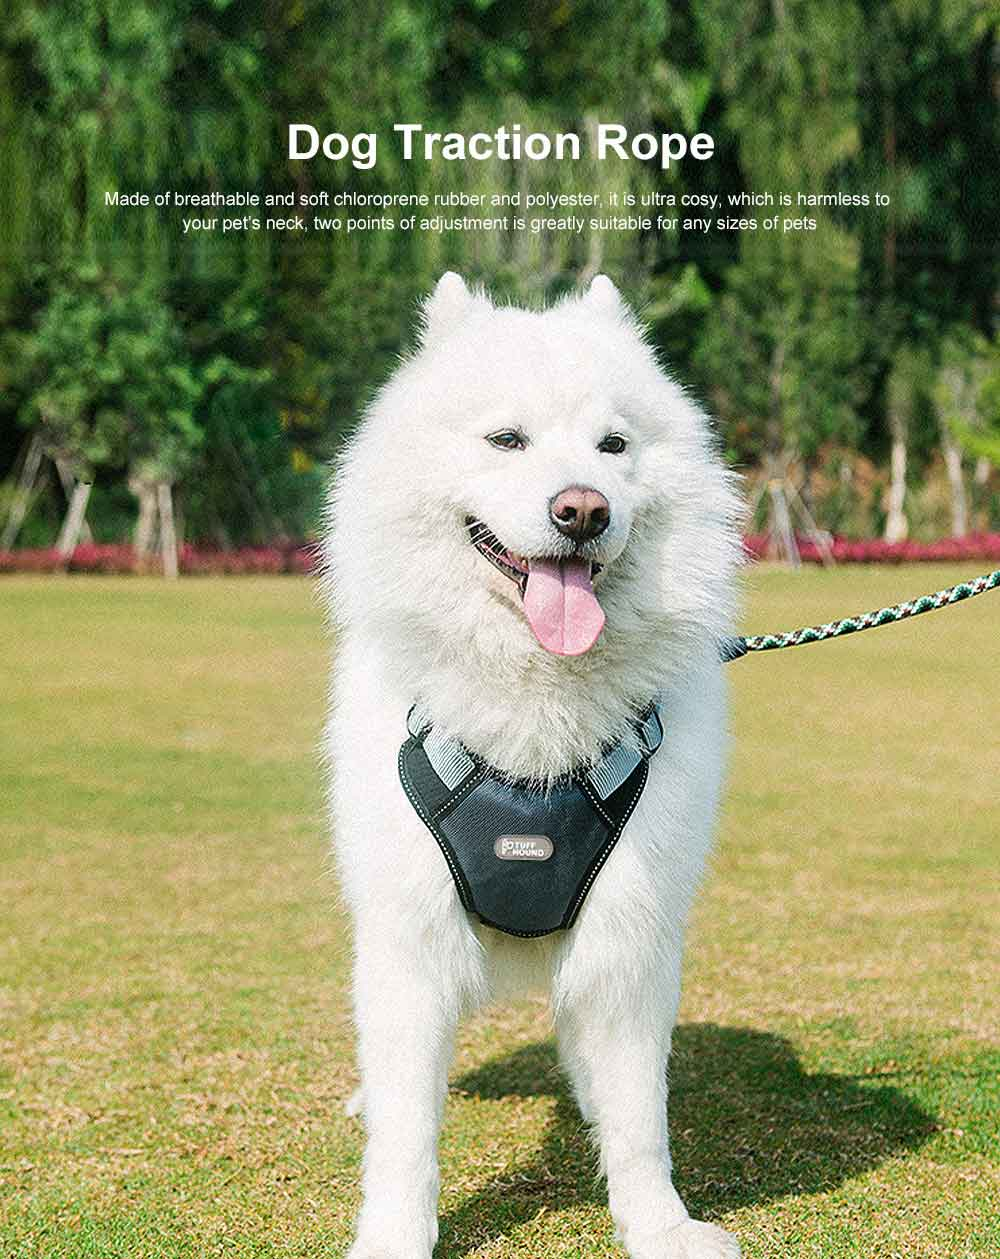 Dog Traction Rope Pet Hardness Chain Medium Large Dog Rope Adjustable Safety Travel Chain 0